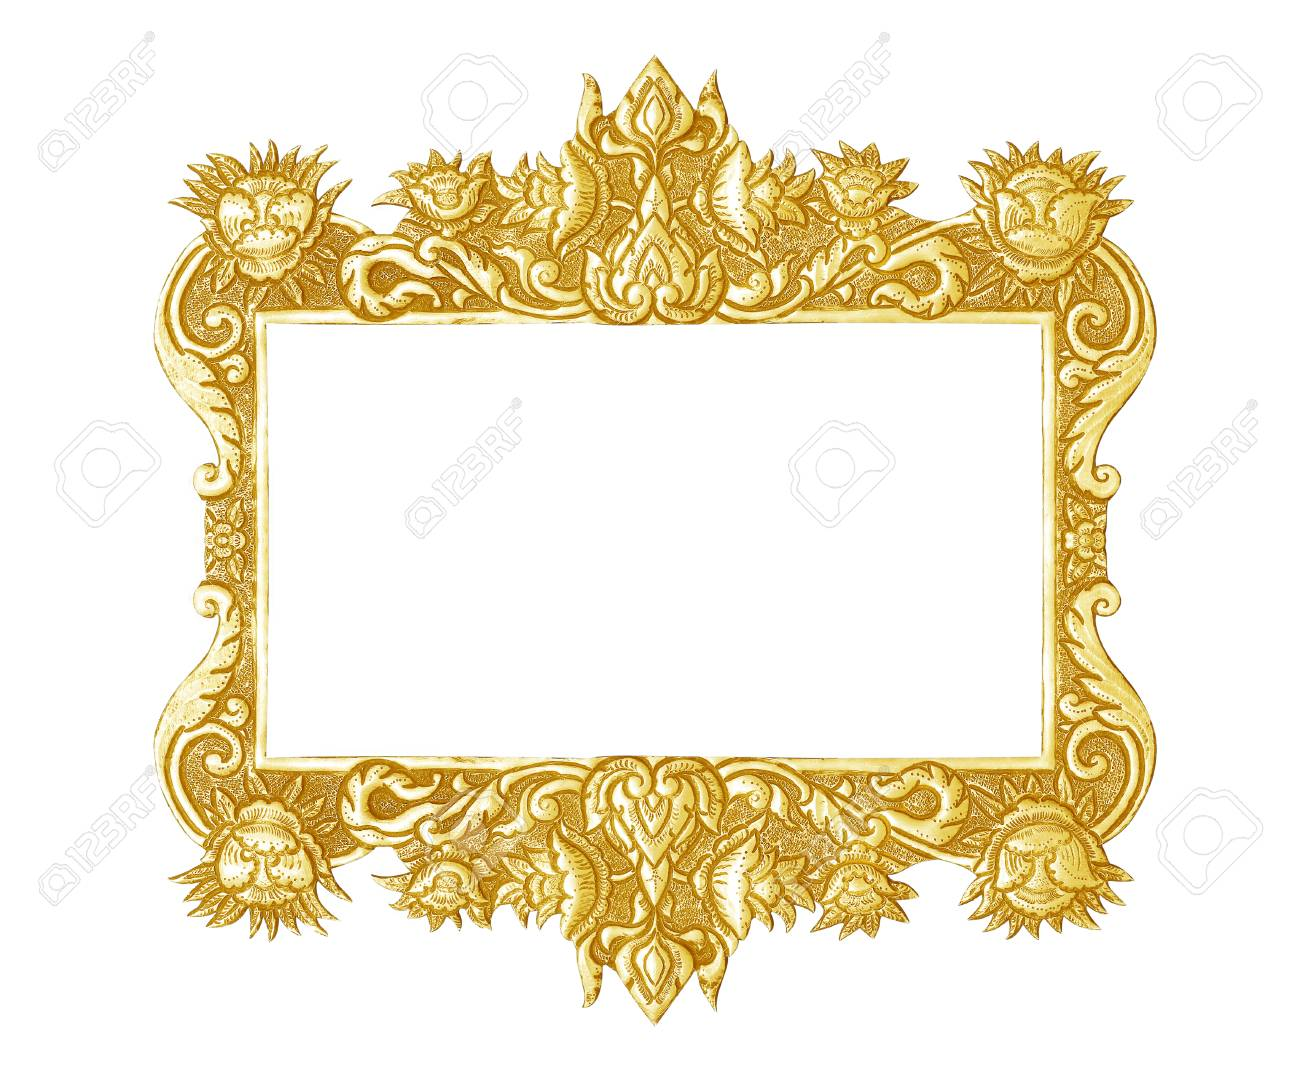 Old Decorative Silver Frame - Handmade, Engraved - Isolated On ...